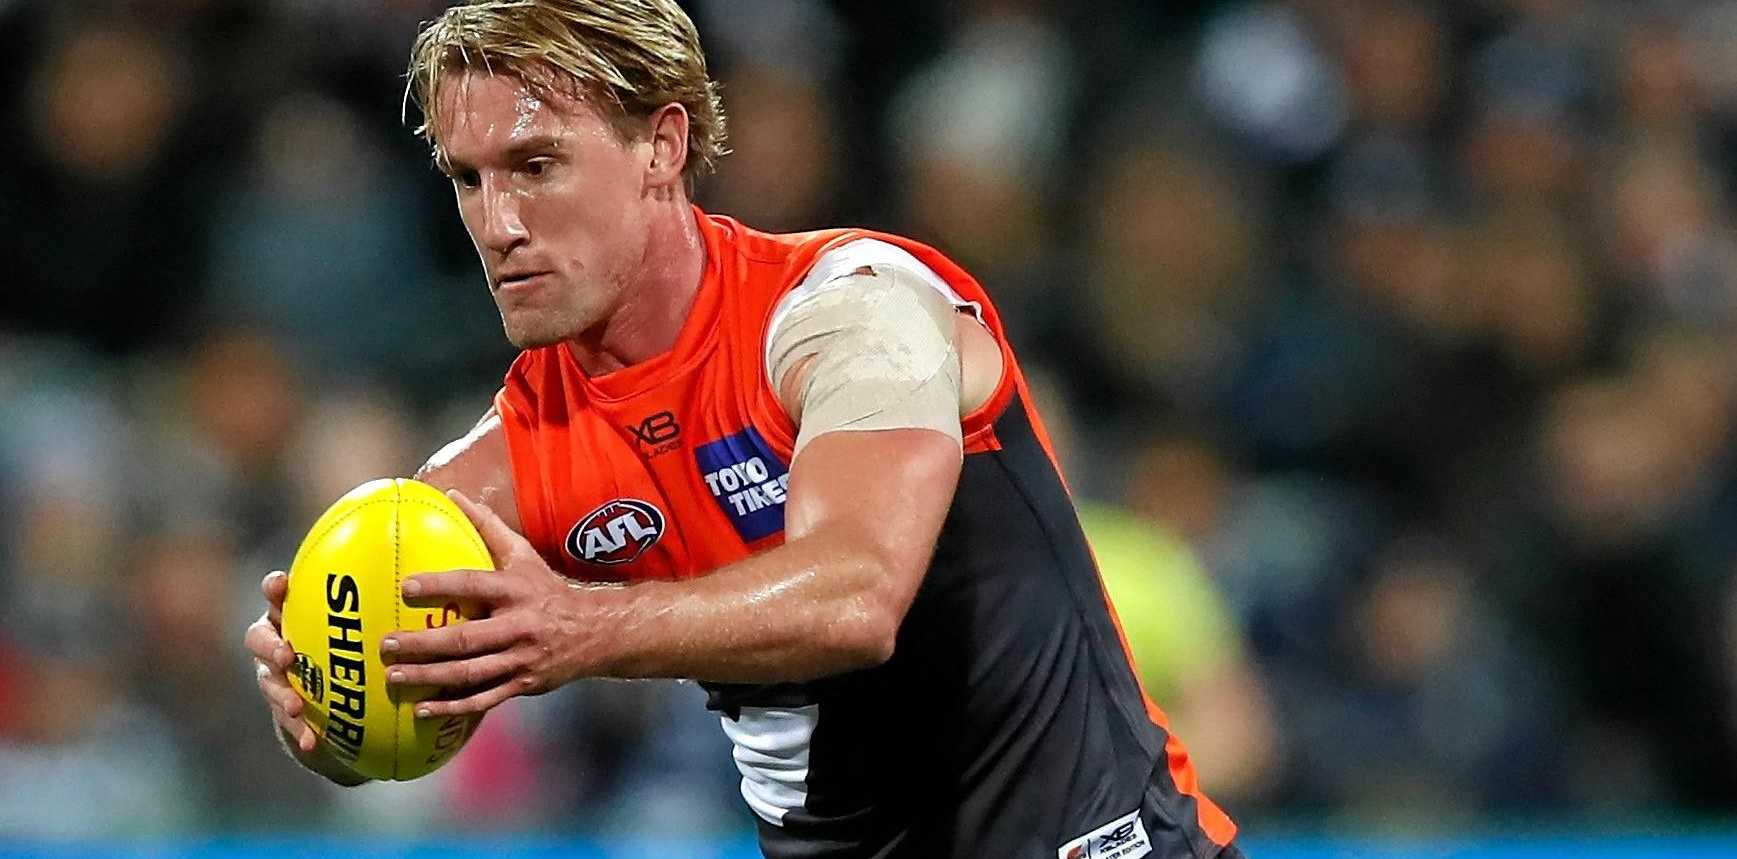 Lachlan Keeffe back in action for the Giants.